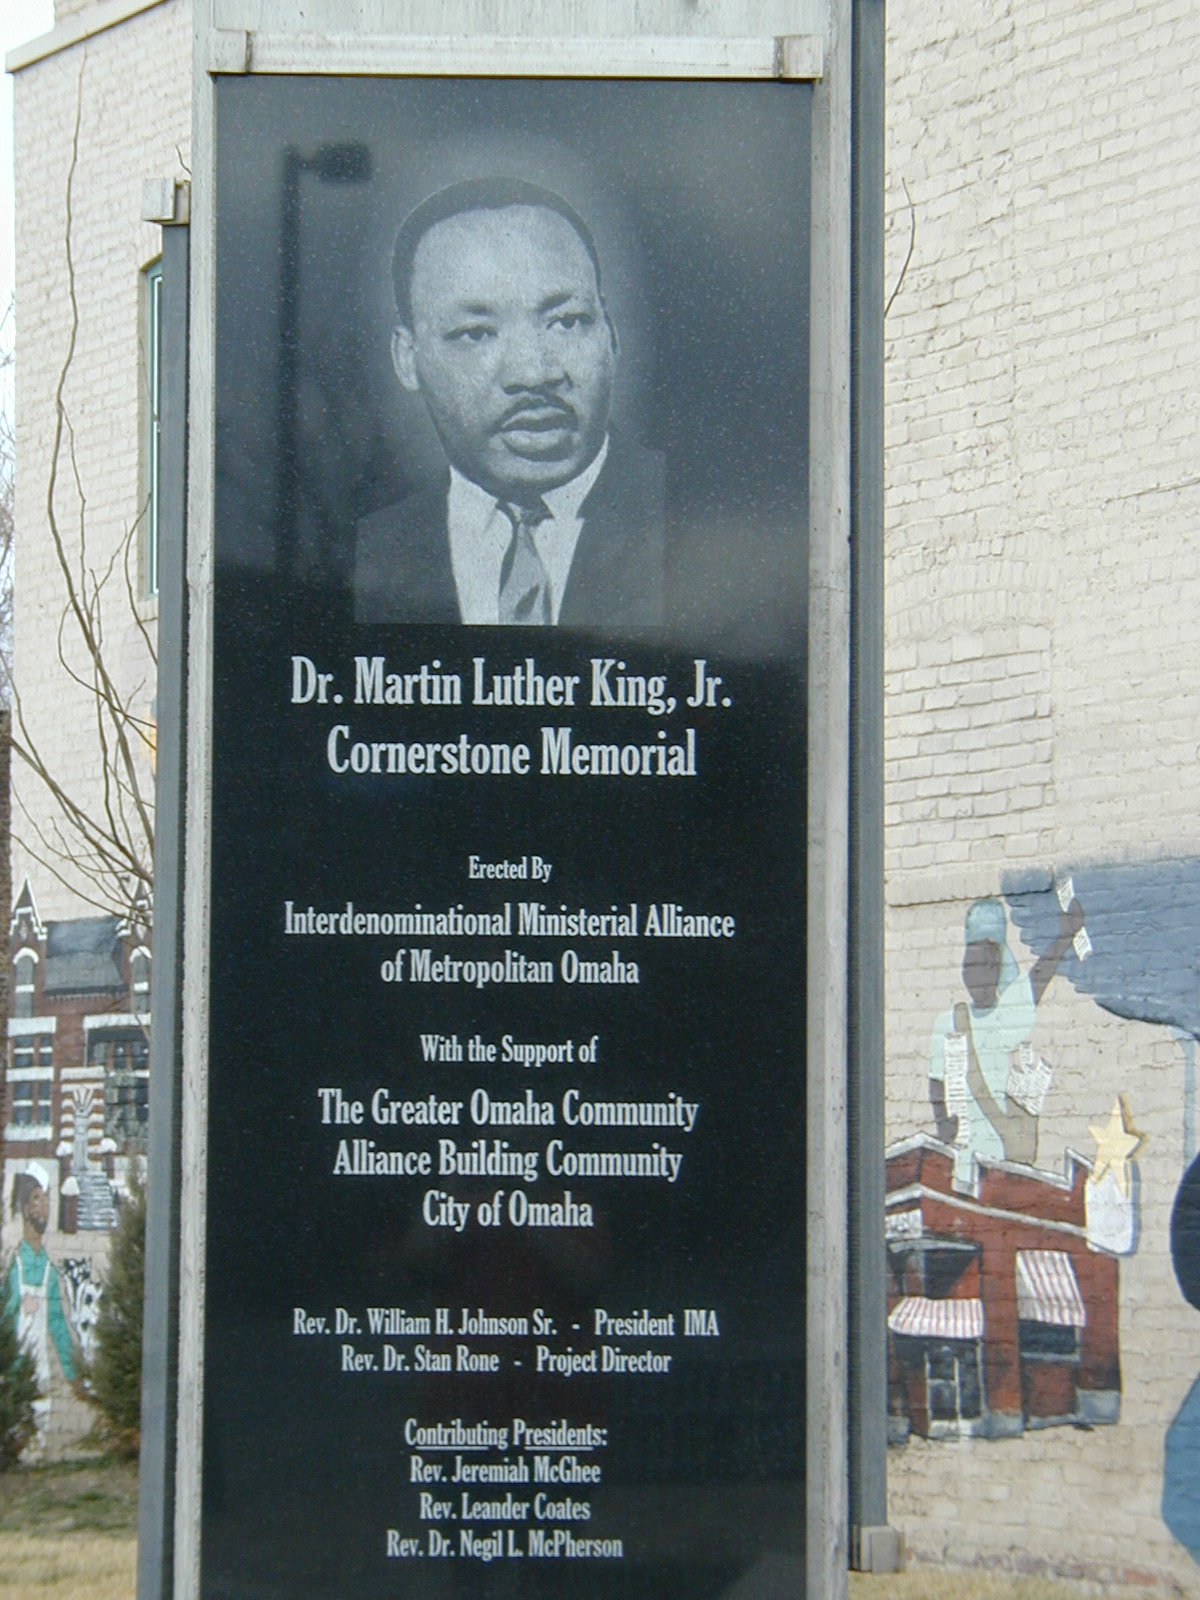 dr. martin luther king jr. essay contest